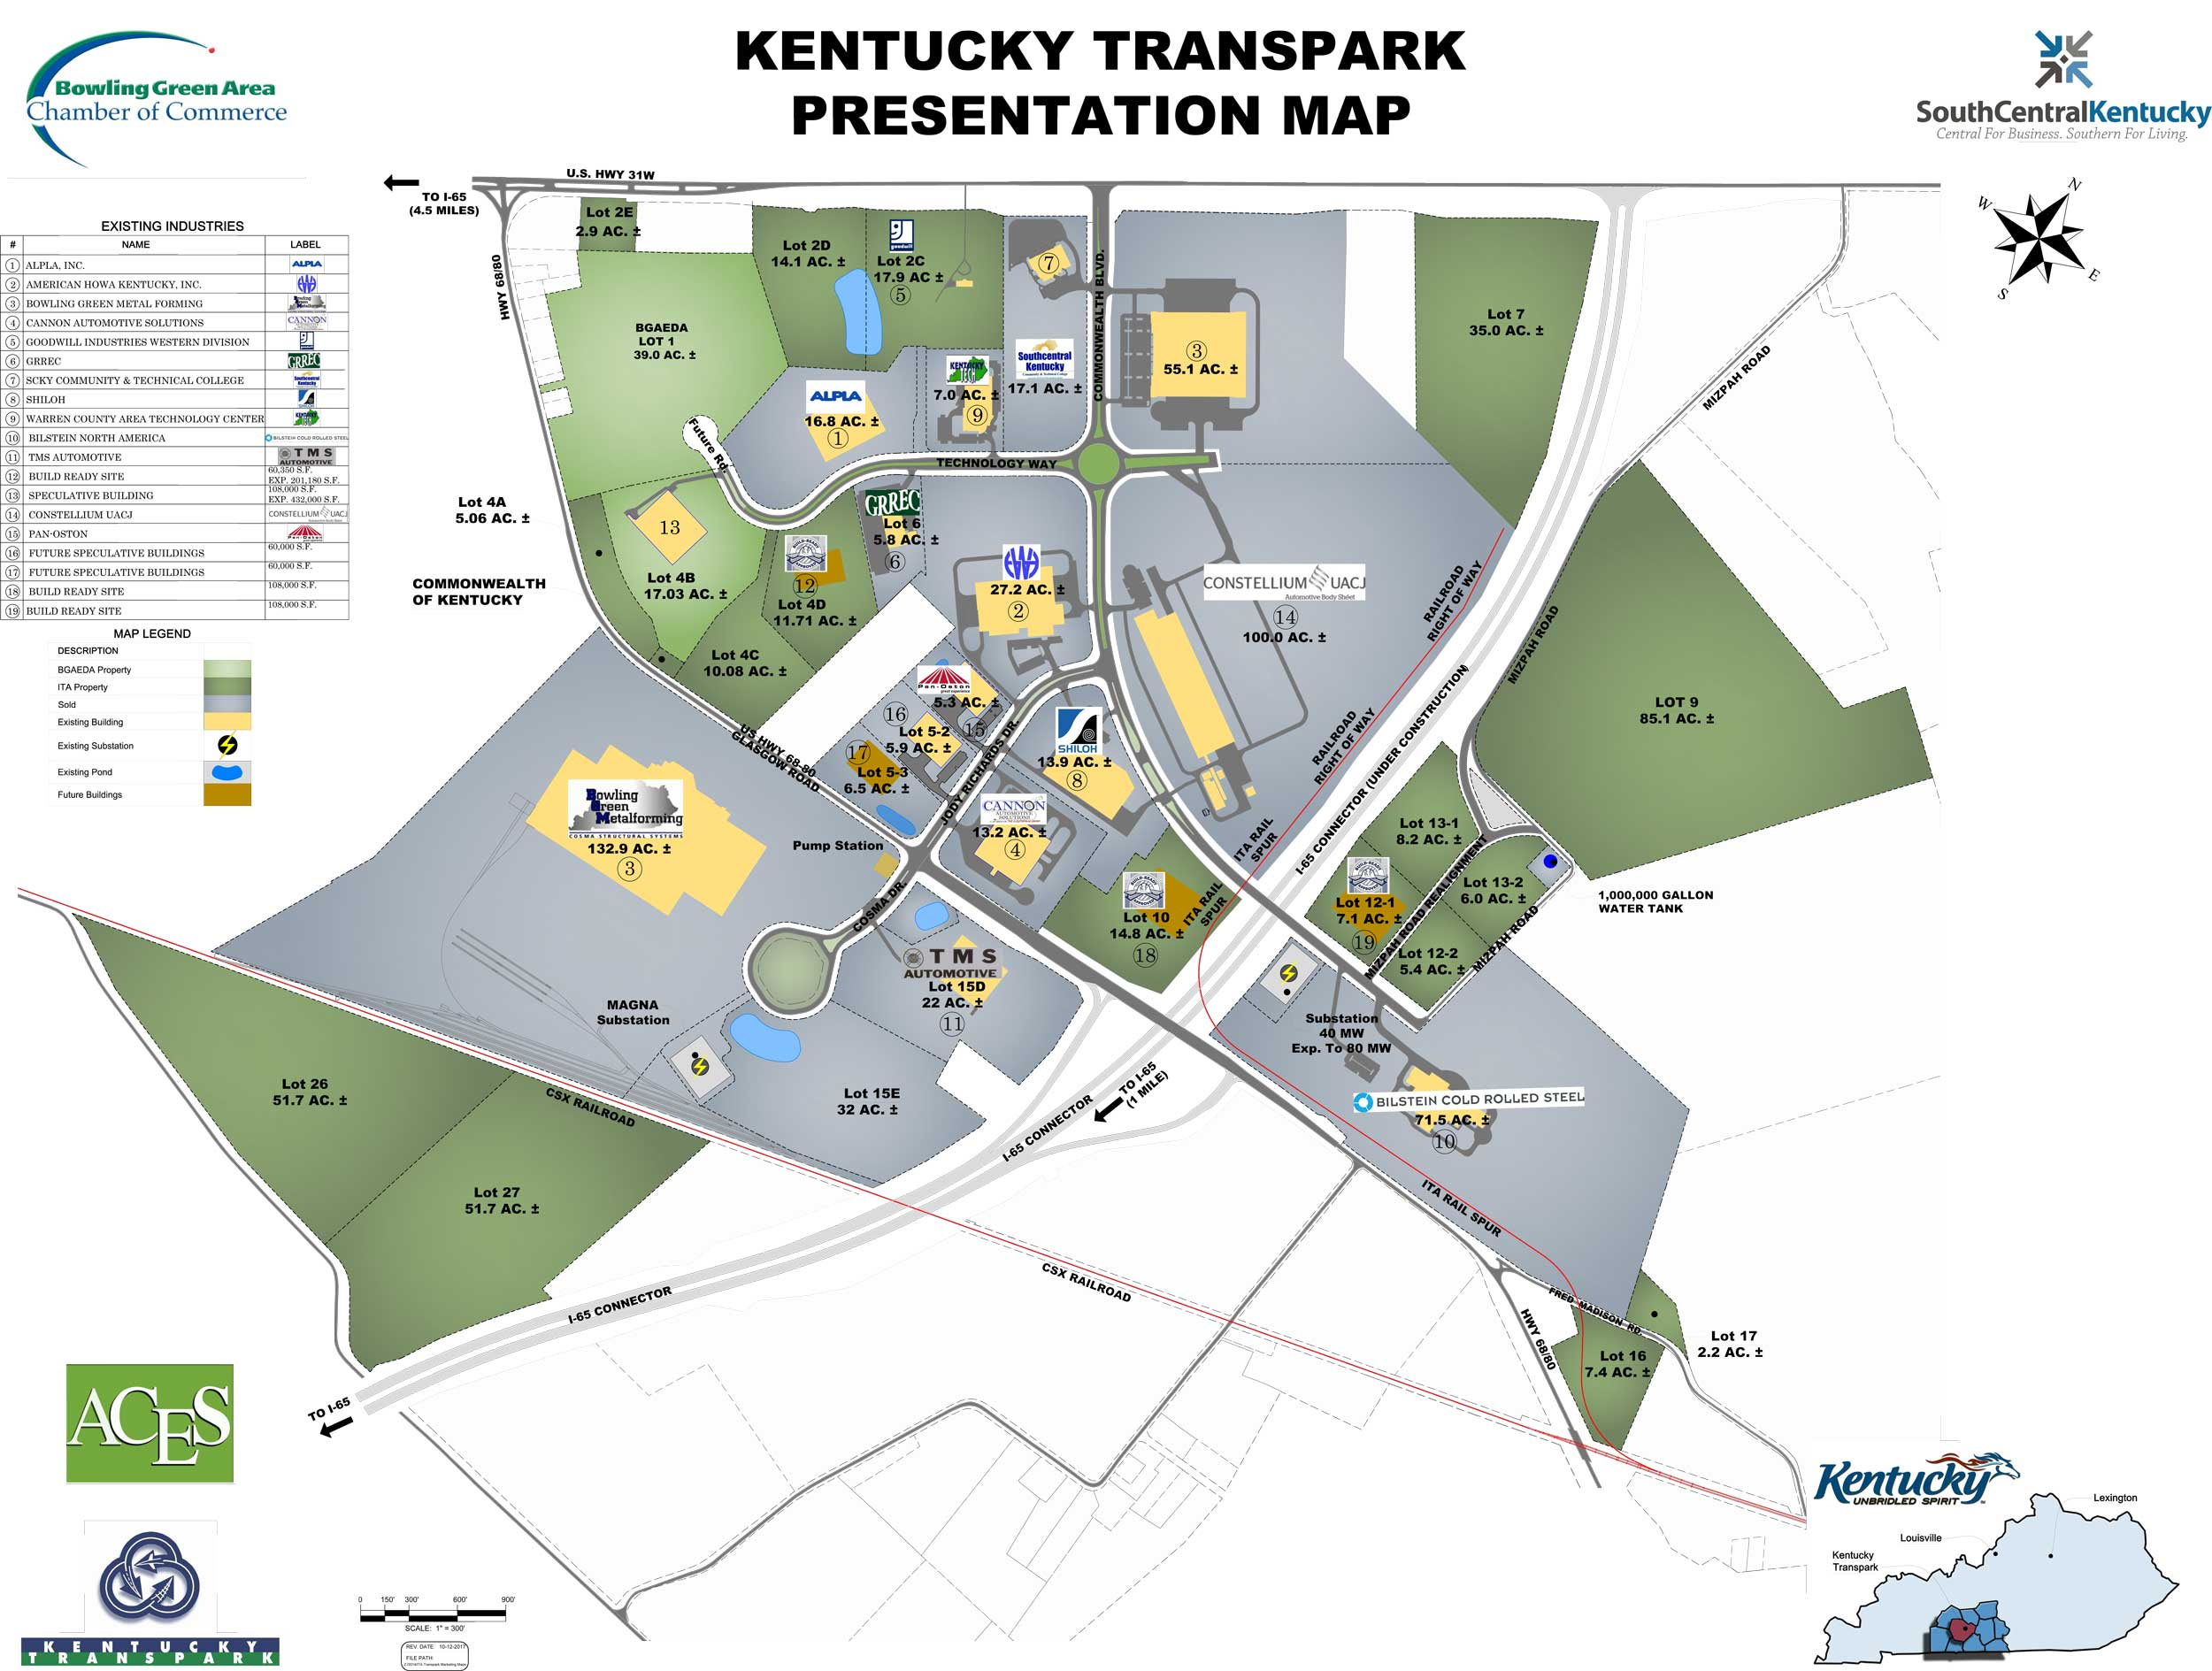 Kentucky Transpark Presentation Map